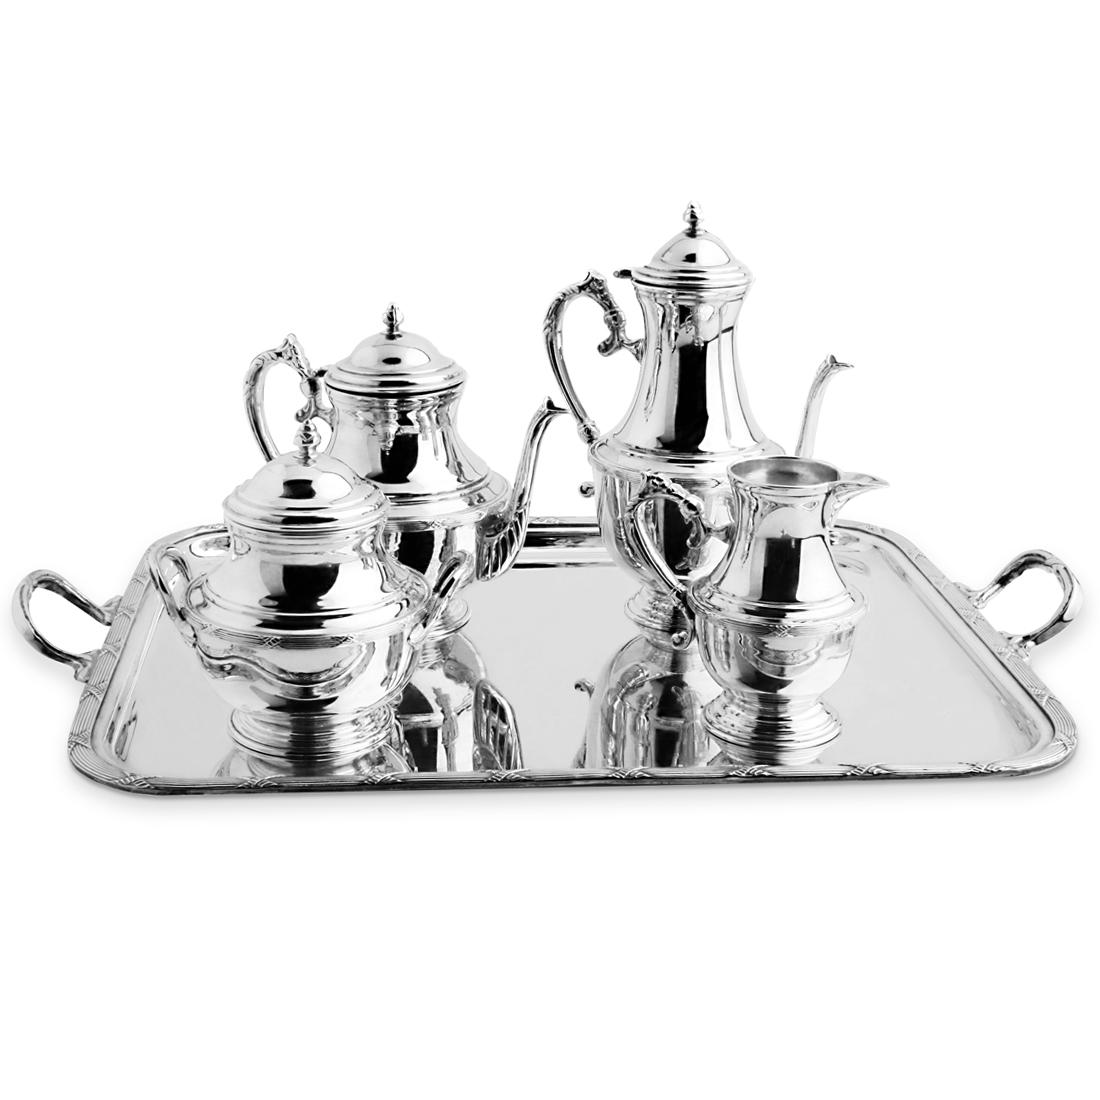 Orfevra Silver Plated Tea Coffee Set